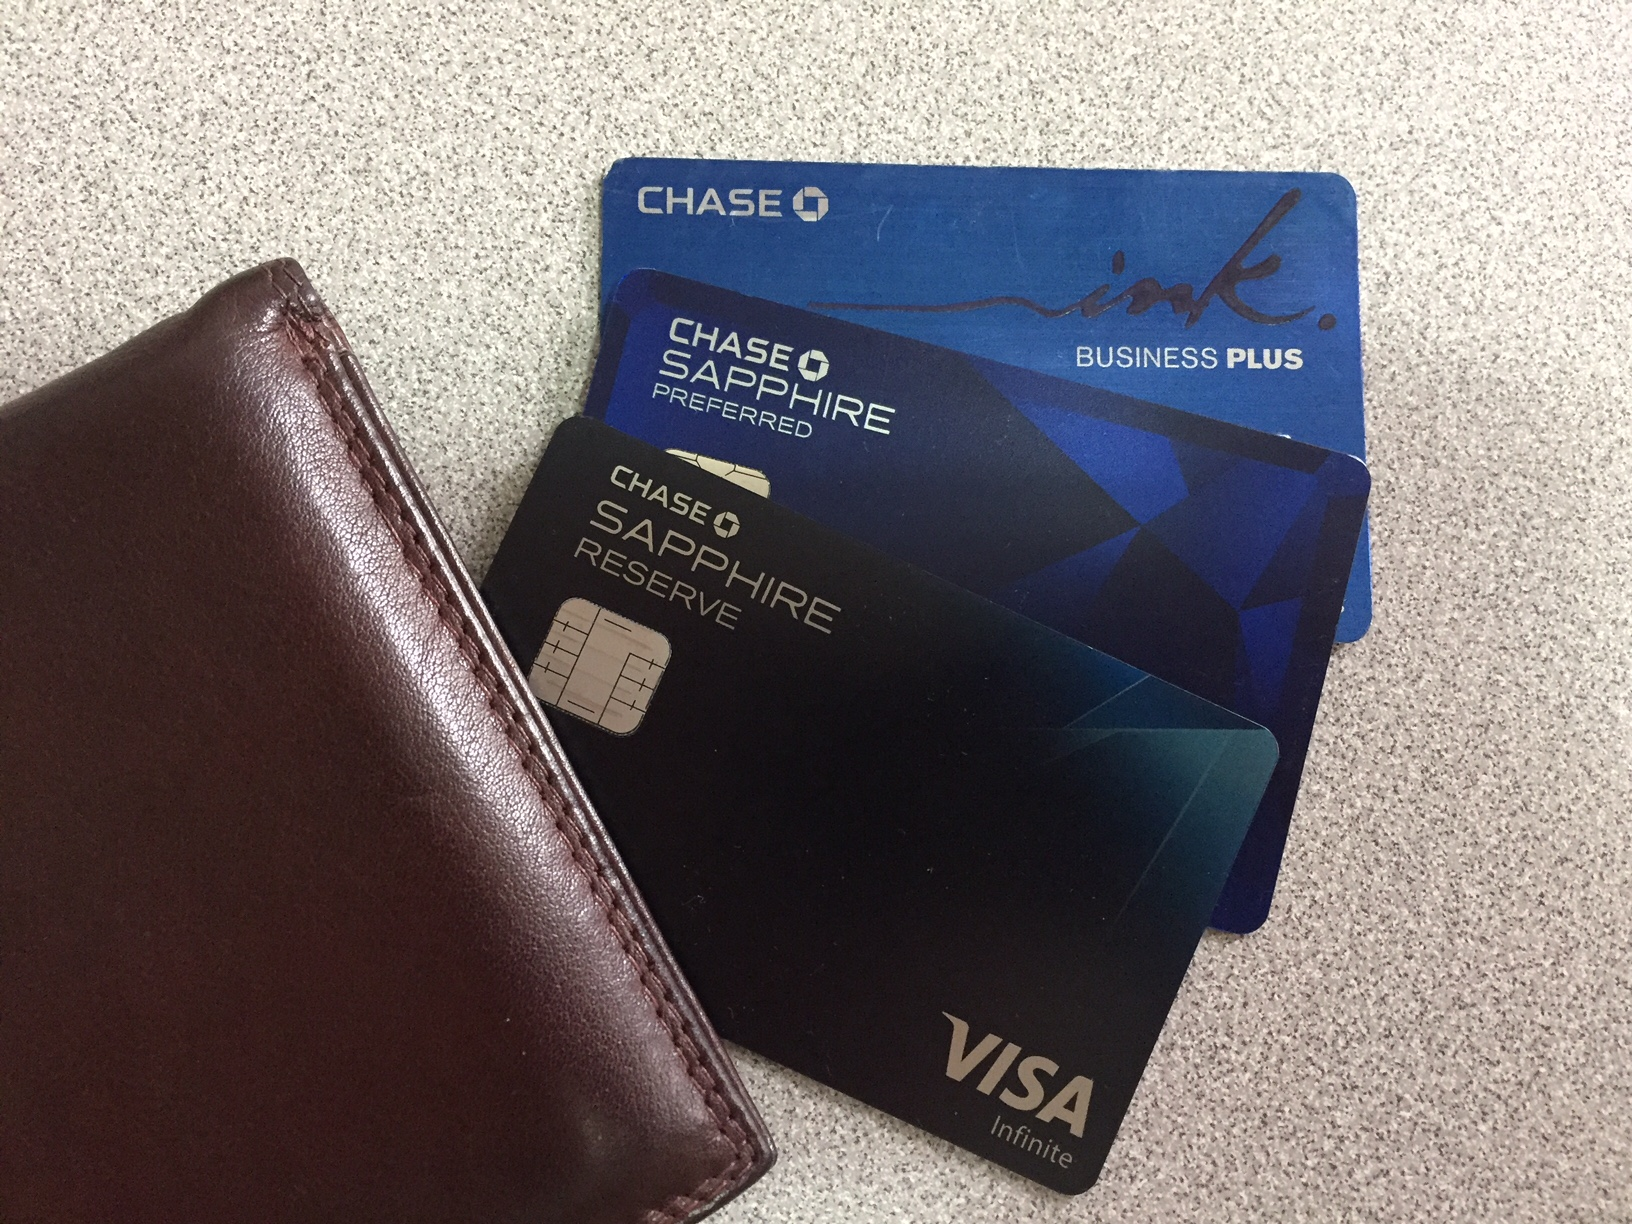 Guide to the Chase 5/24 Credit Card Rule for Applications